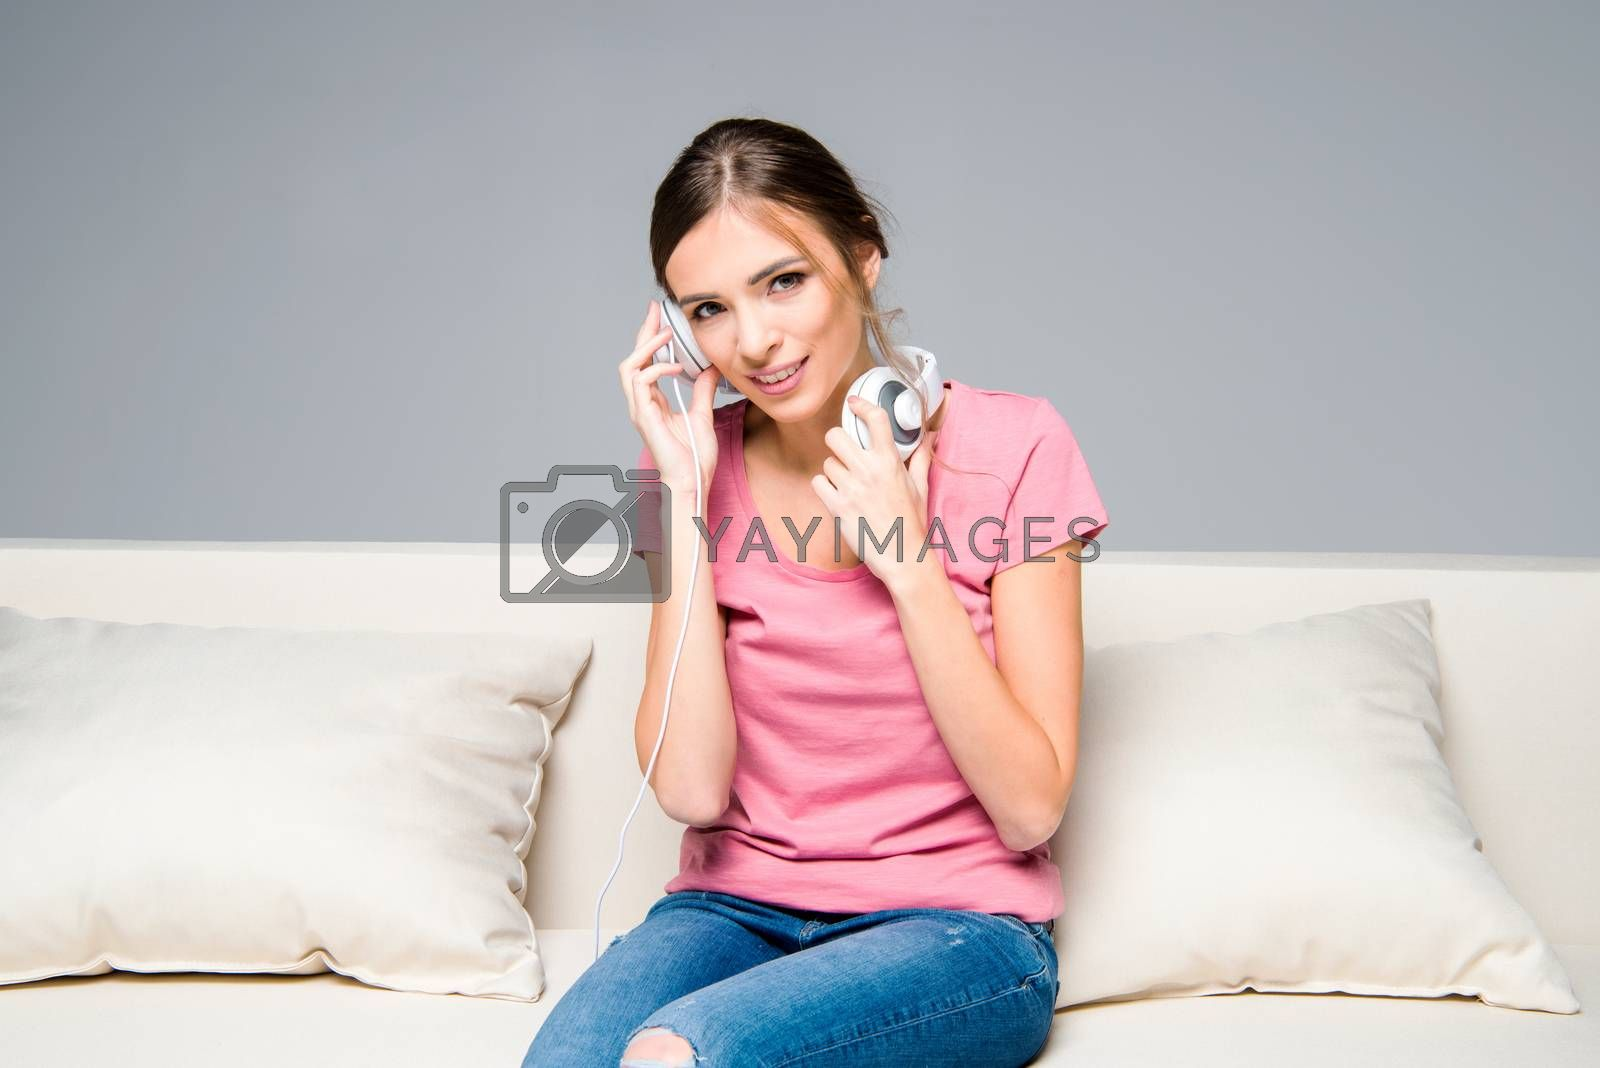 Smiling young woman with white headphones sitting on couch and looking at camera